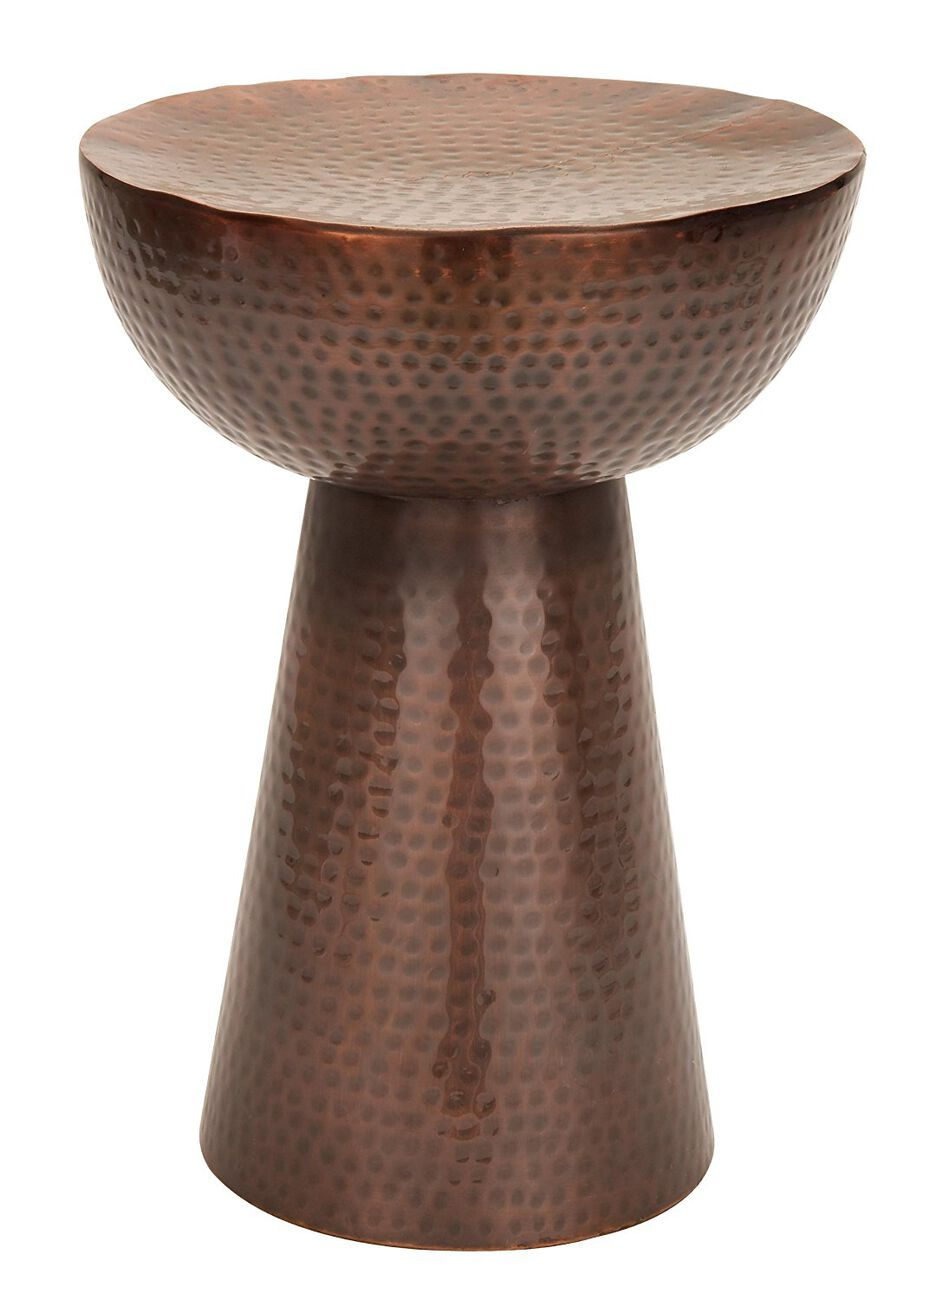 Sitting Stool, Copper-Hued Finish with Hammered Styling